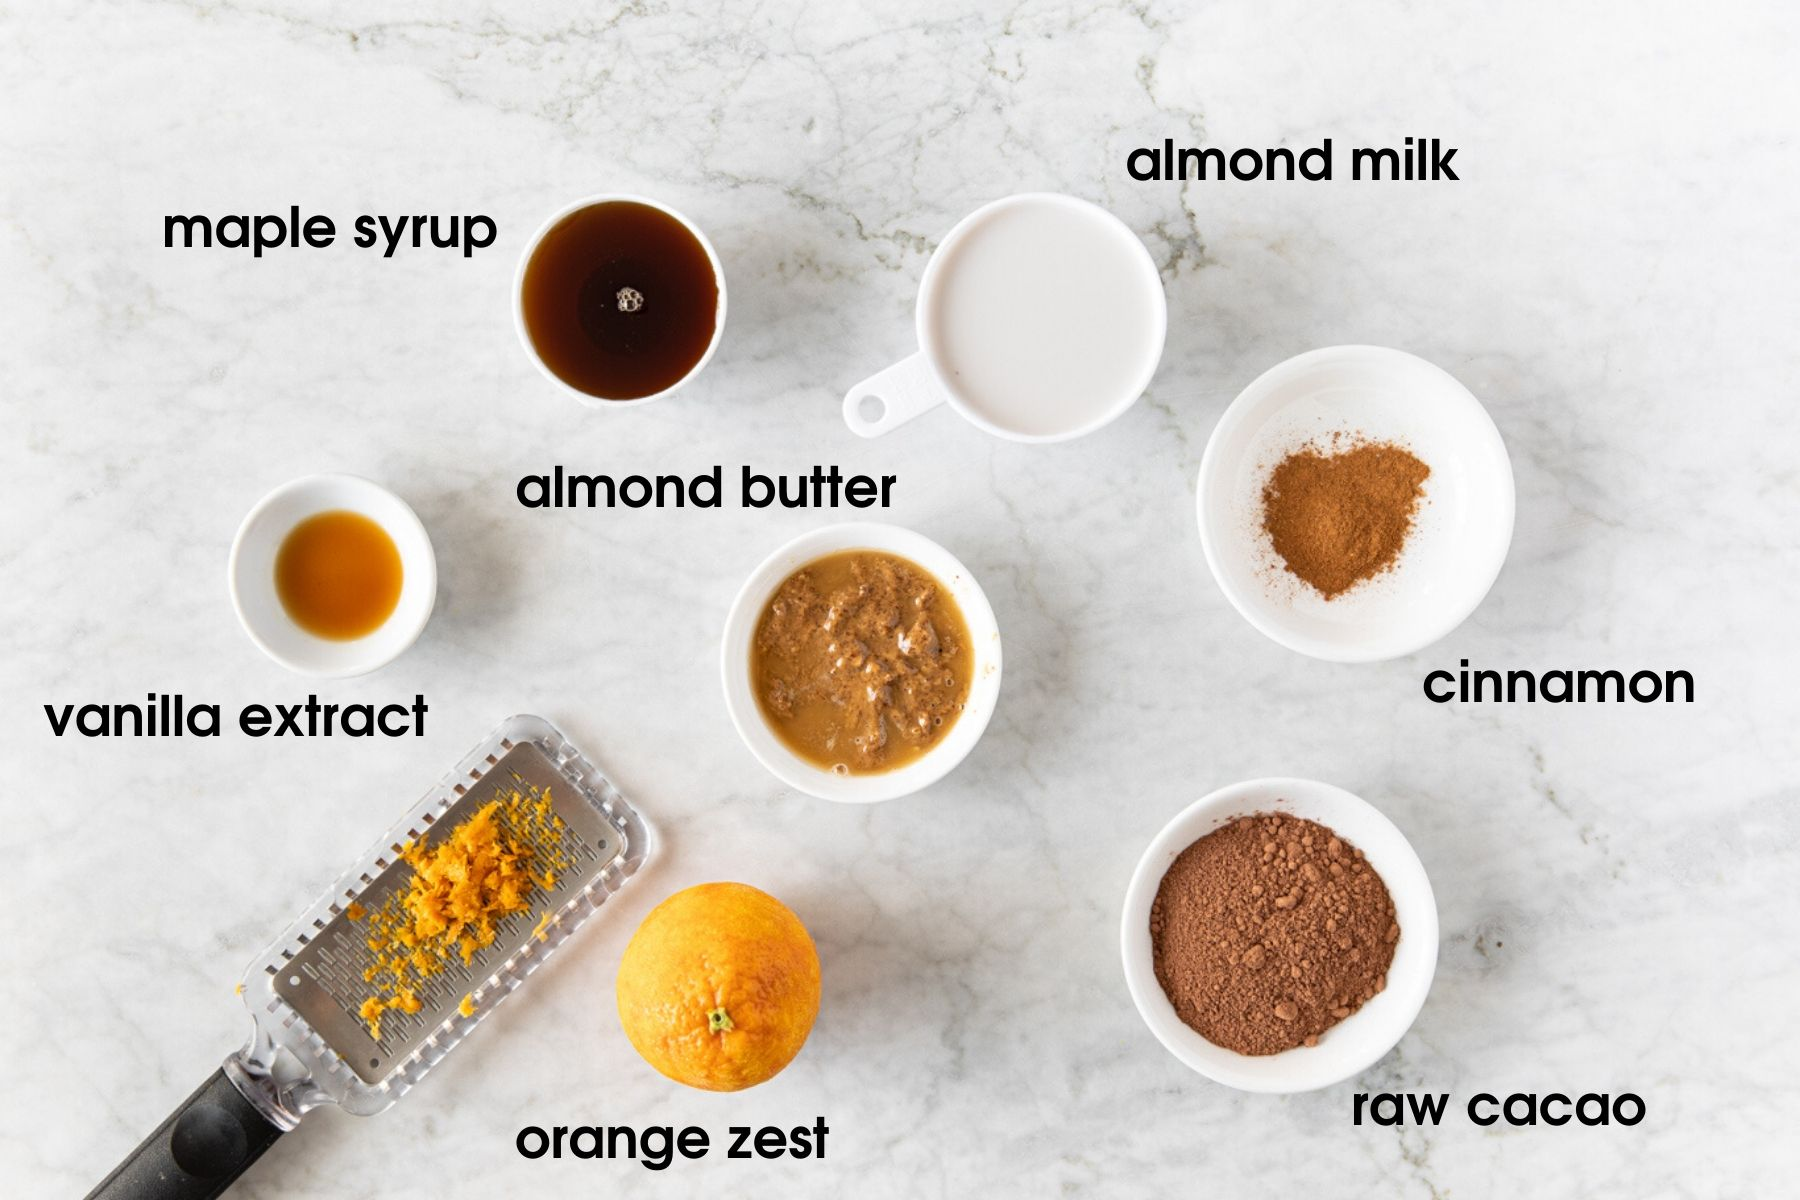 Ingredients needed to for sweet potato chocolate pudding: maple syrup, almond milk, almond butter, cinnamon, raw cacao, orange zest, vanilla extract